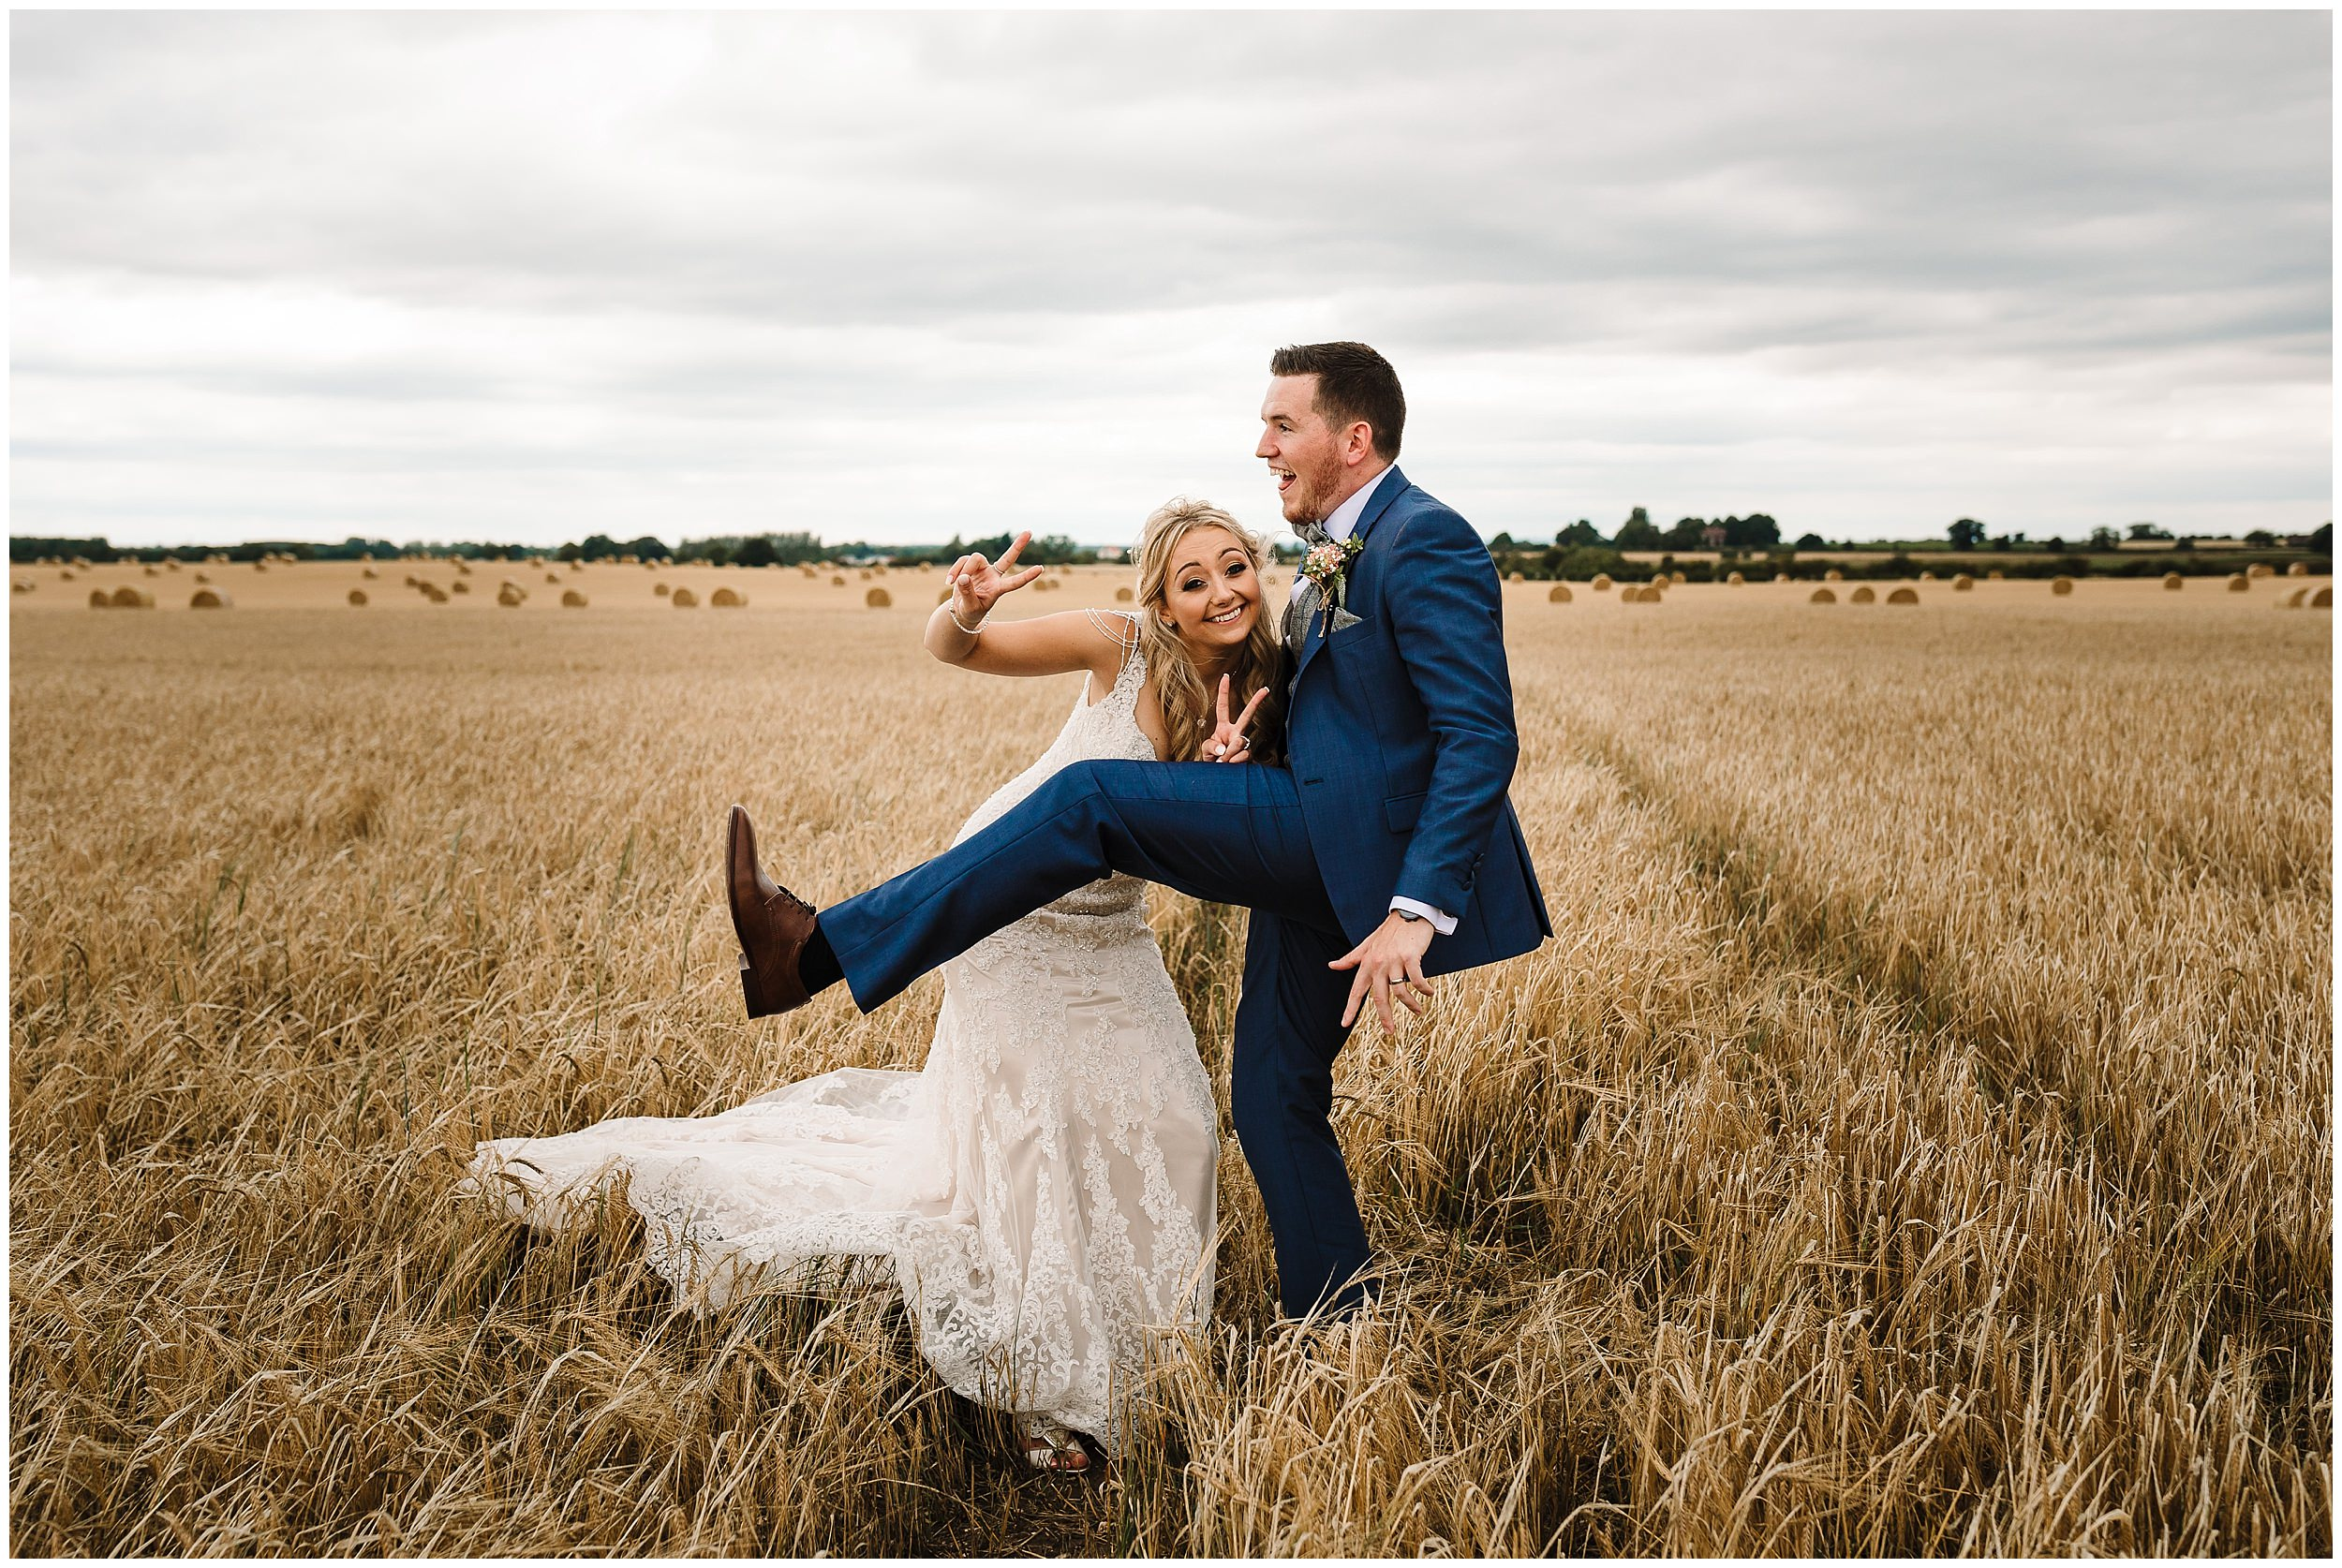 A BRIDE AND GROOM BEING SILLY IN A FIELD IN YORKSHIRE